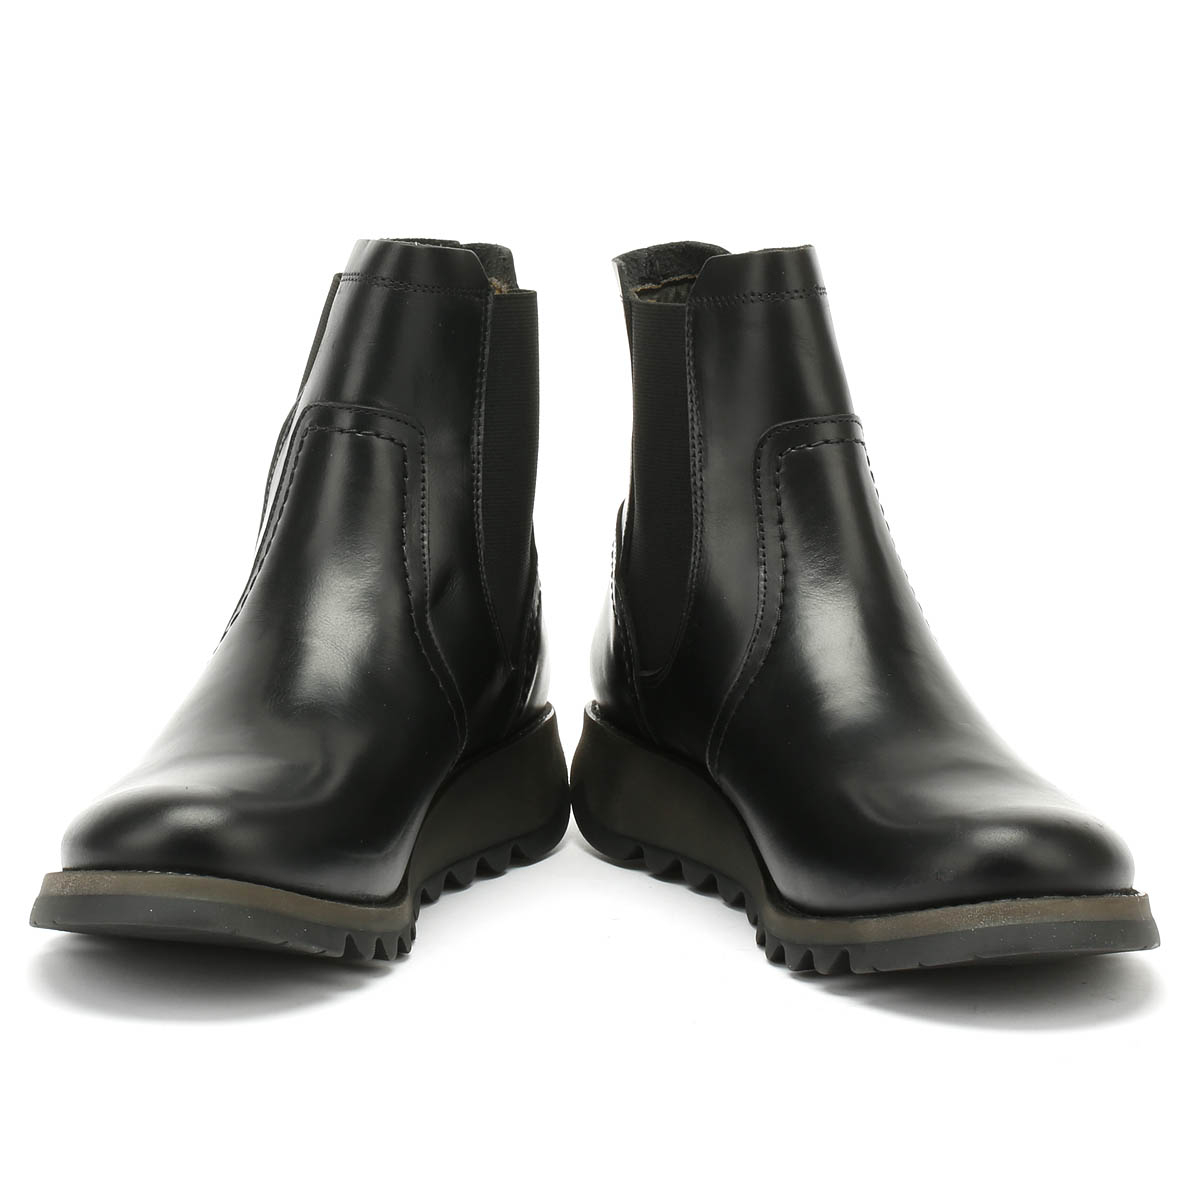 Fly-London-Womens-Boots-Black-Scon-Rug-Ladies-Leather-Winter-Ankle-Shoes thumbnail 6